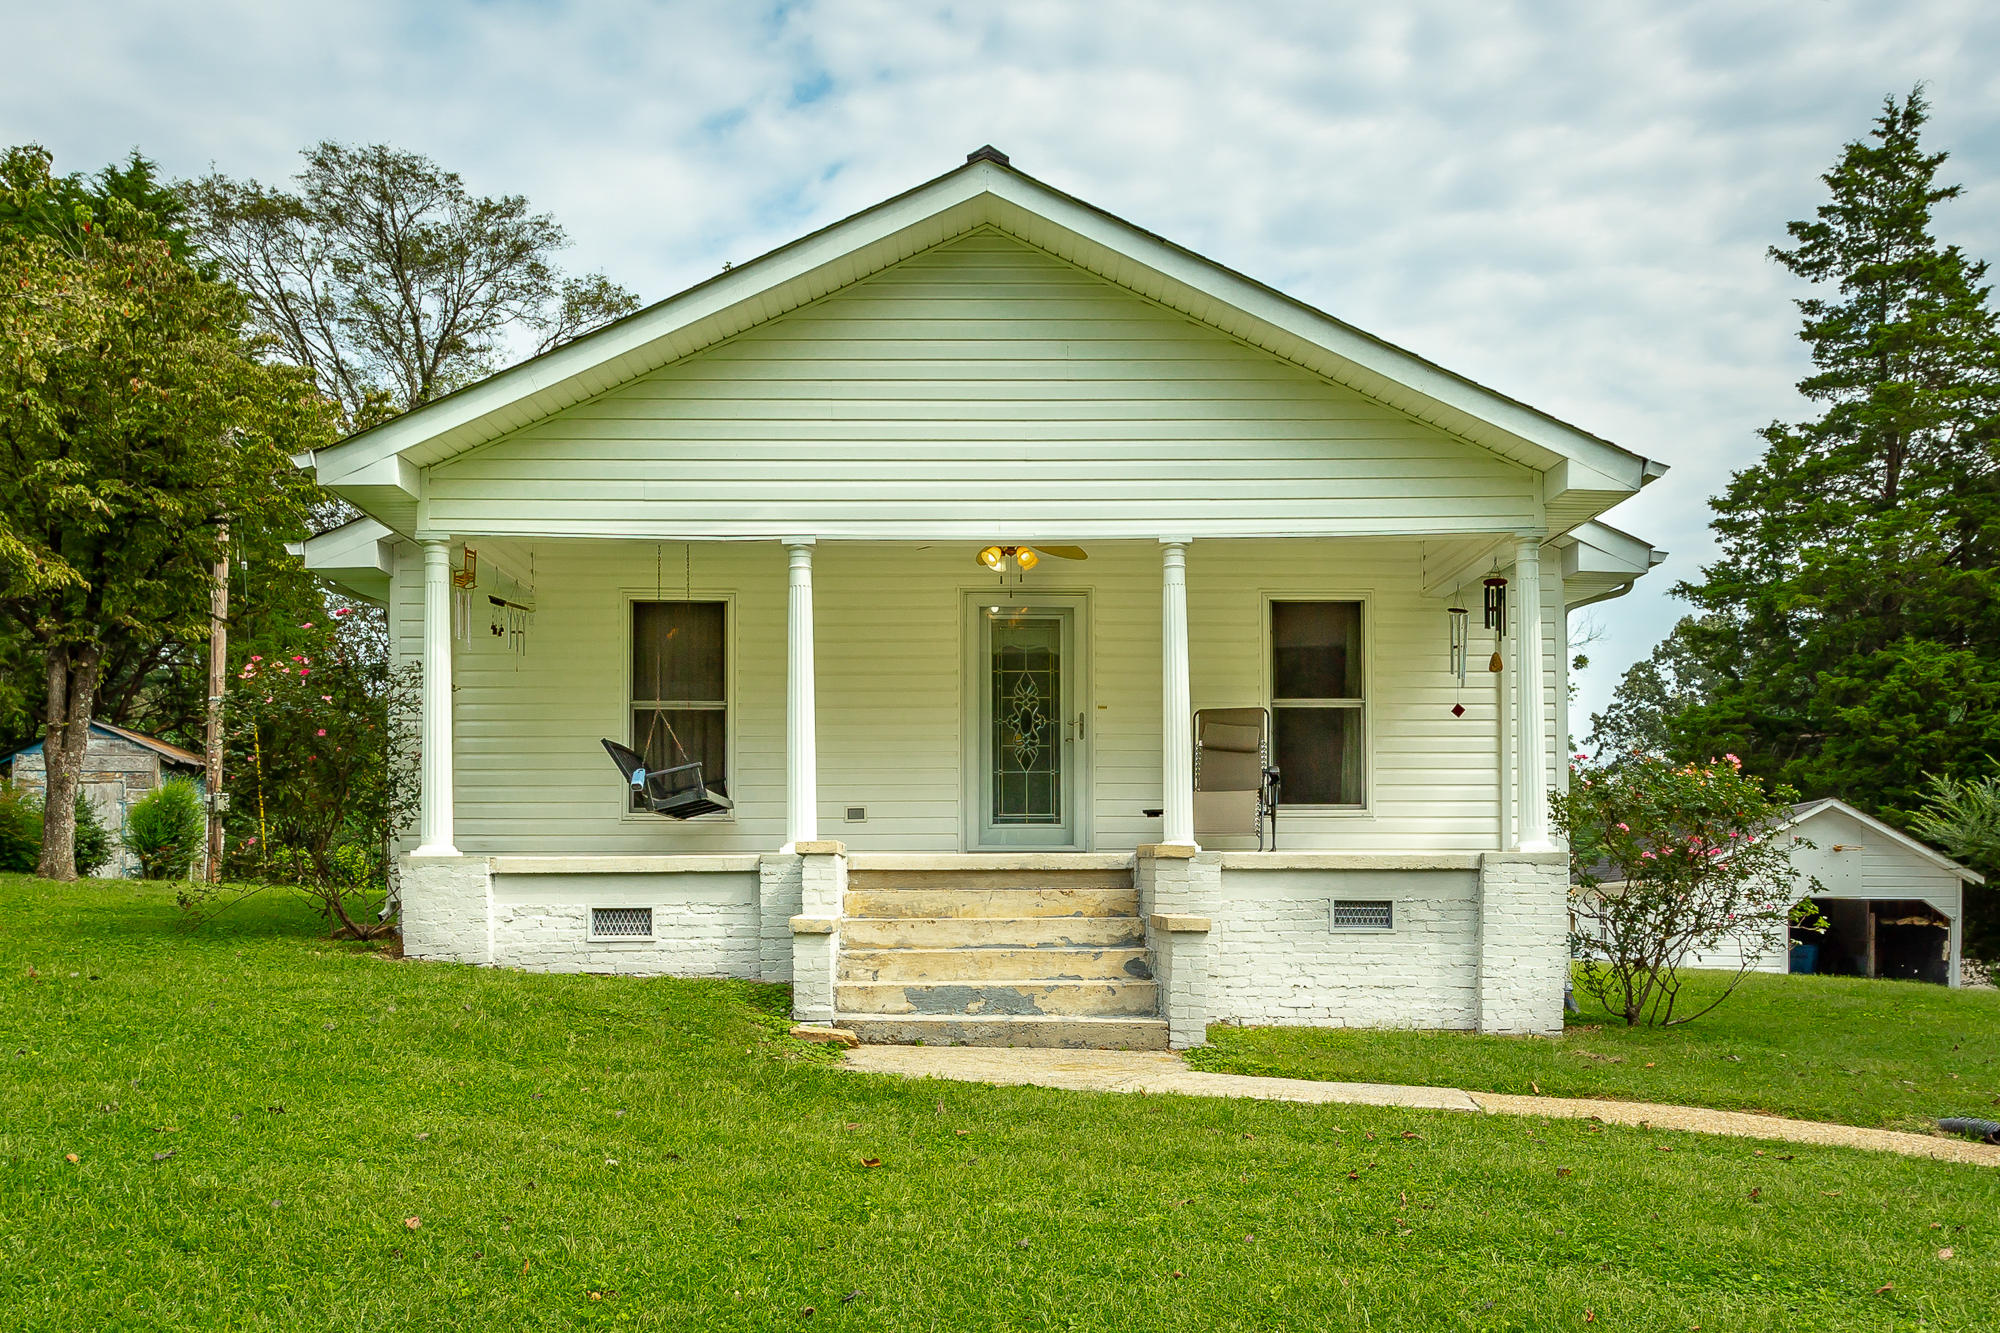 215 Signal View St, Chattanooga, TN 37415